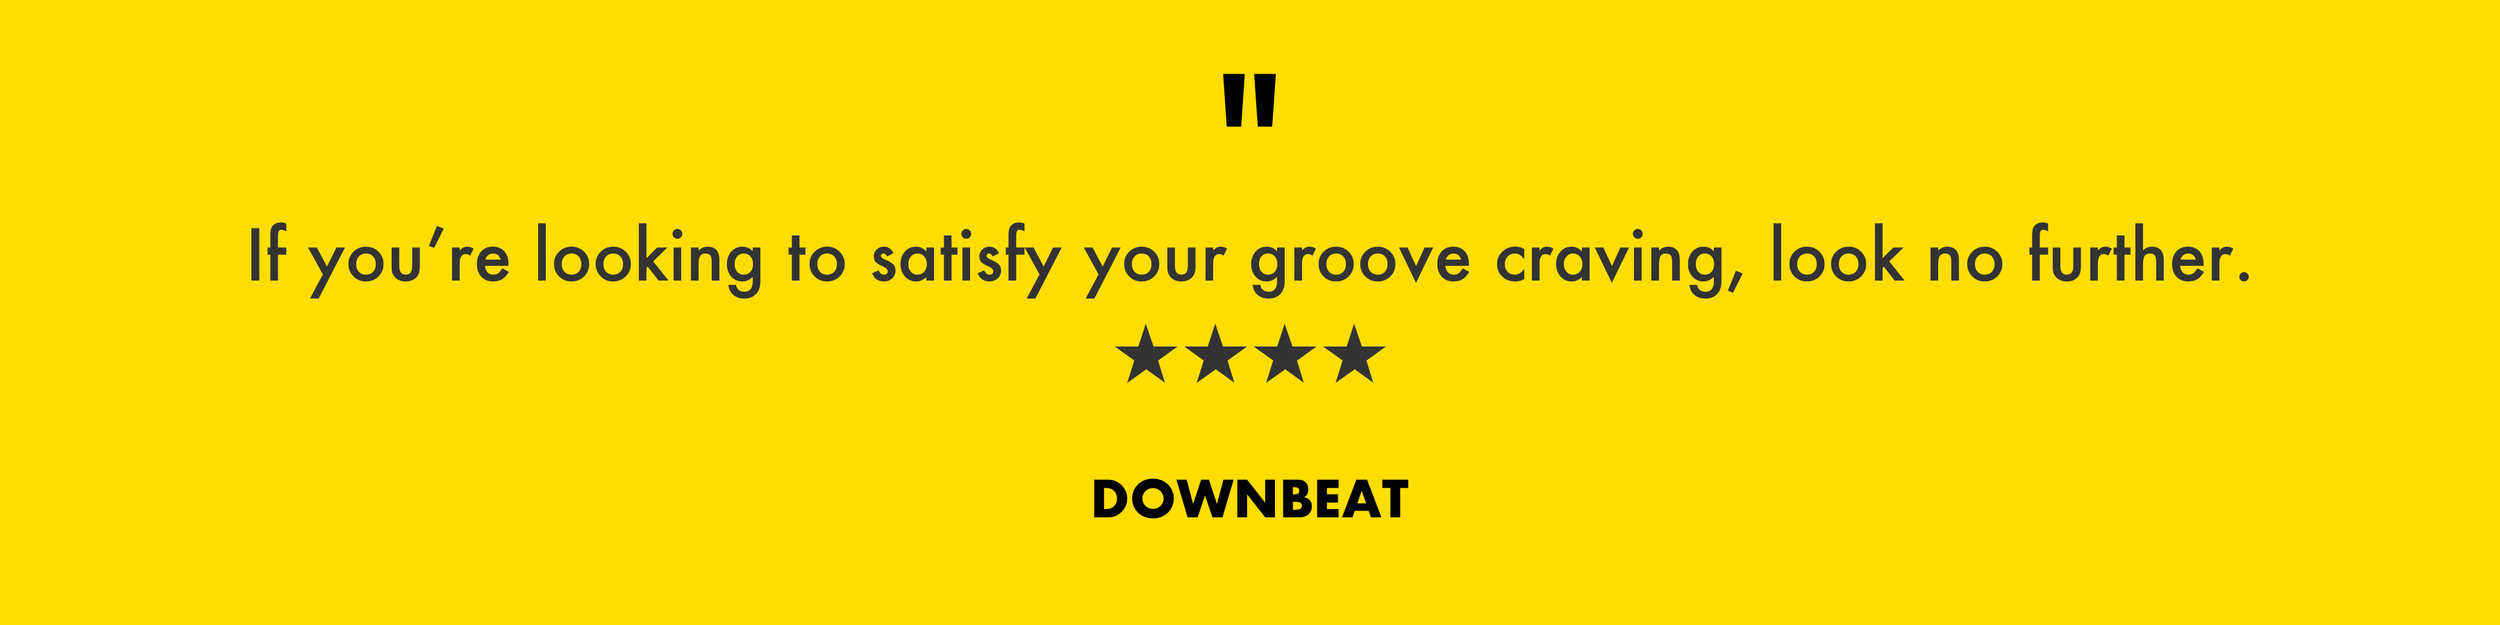 Quote_Downbeat-yellow.png